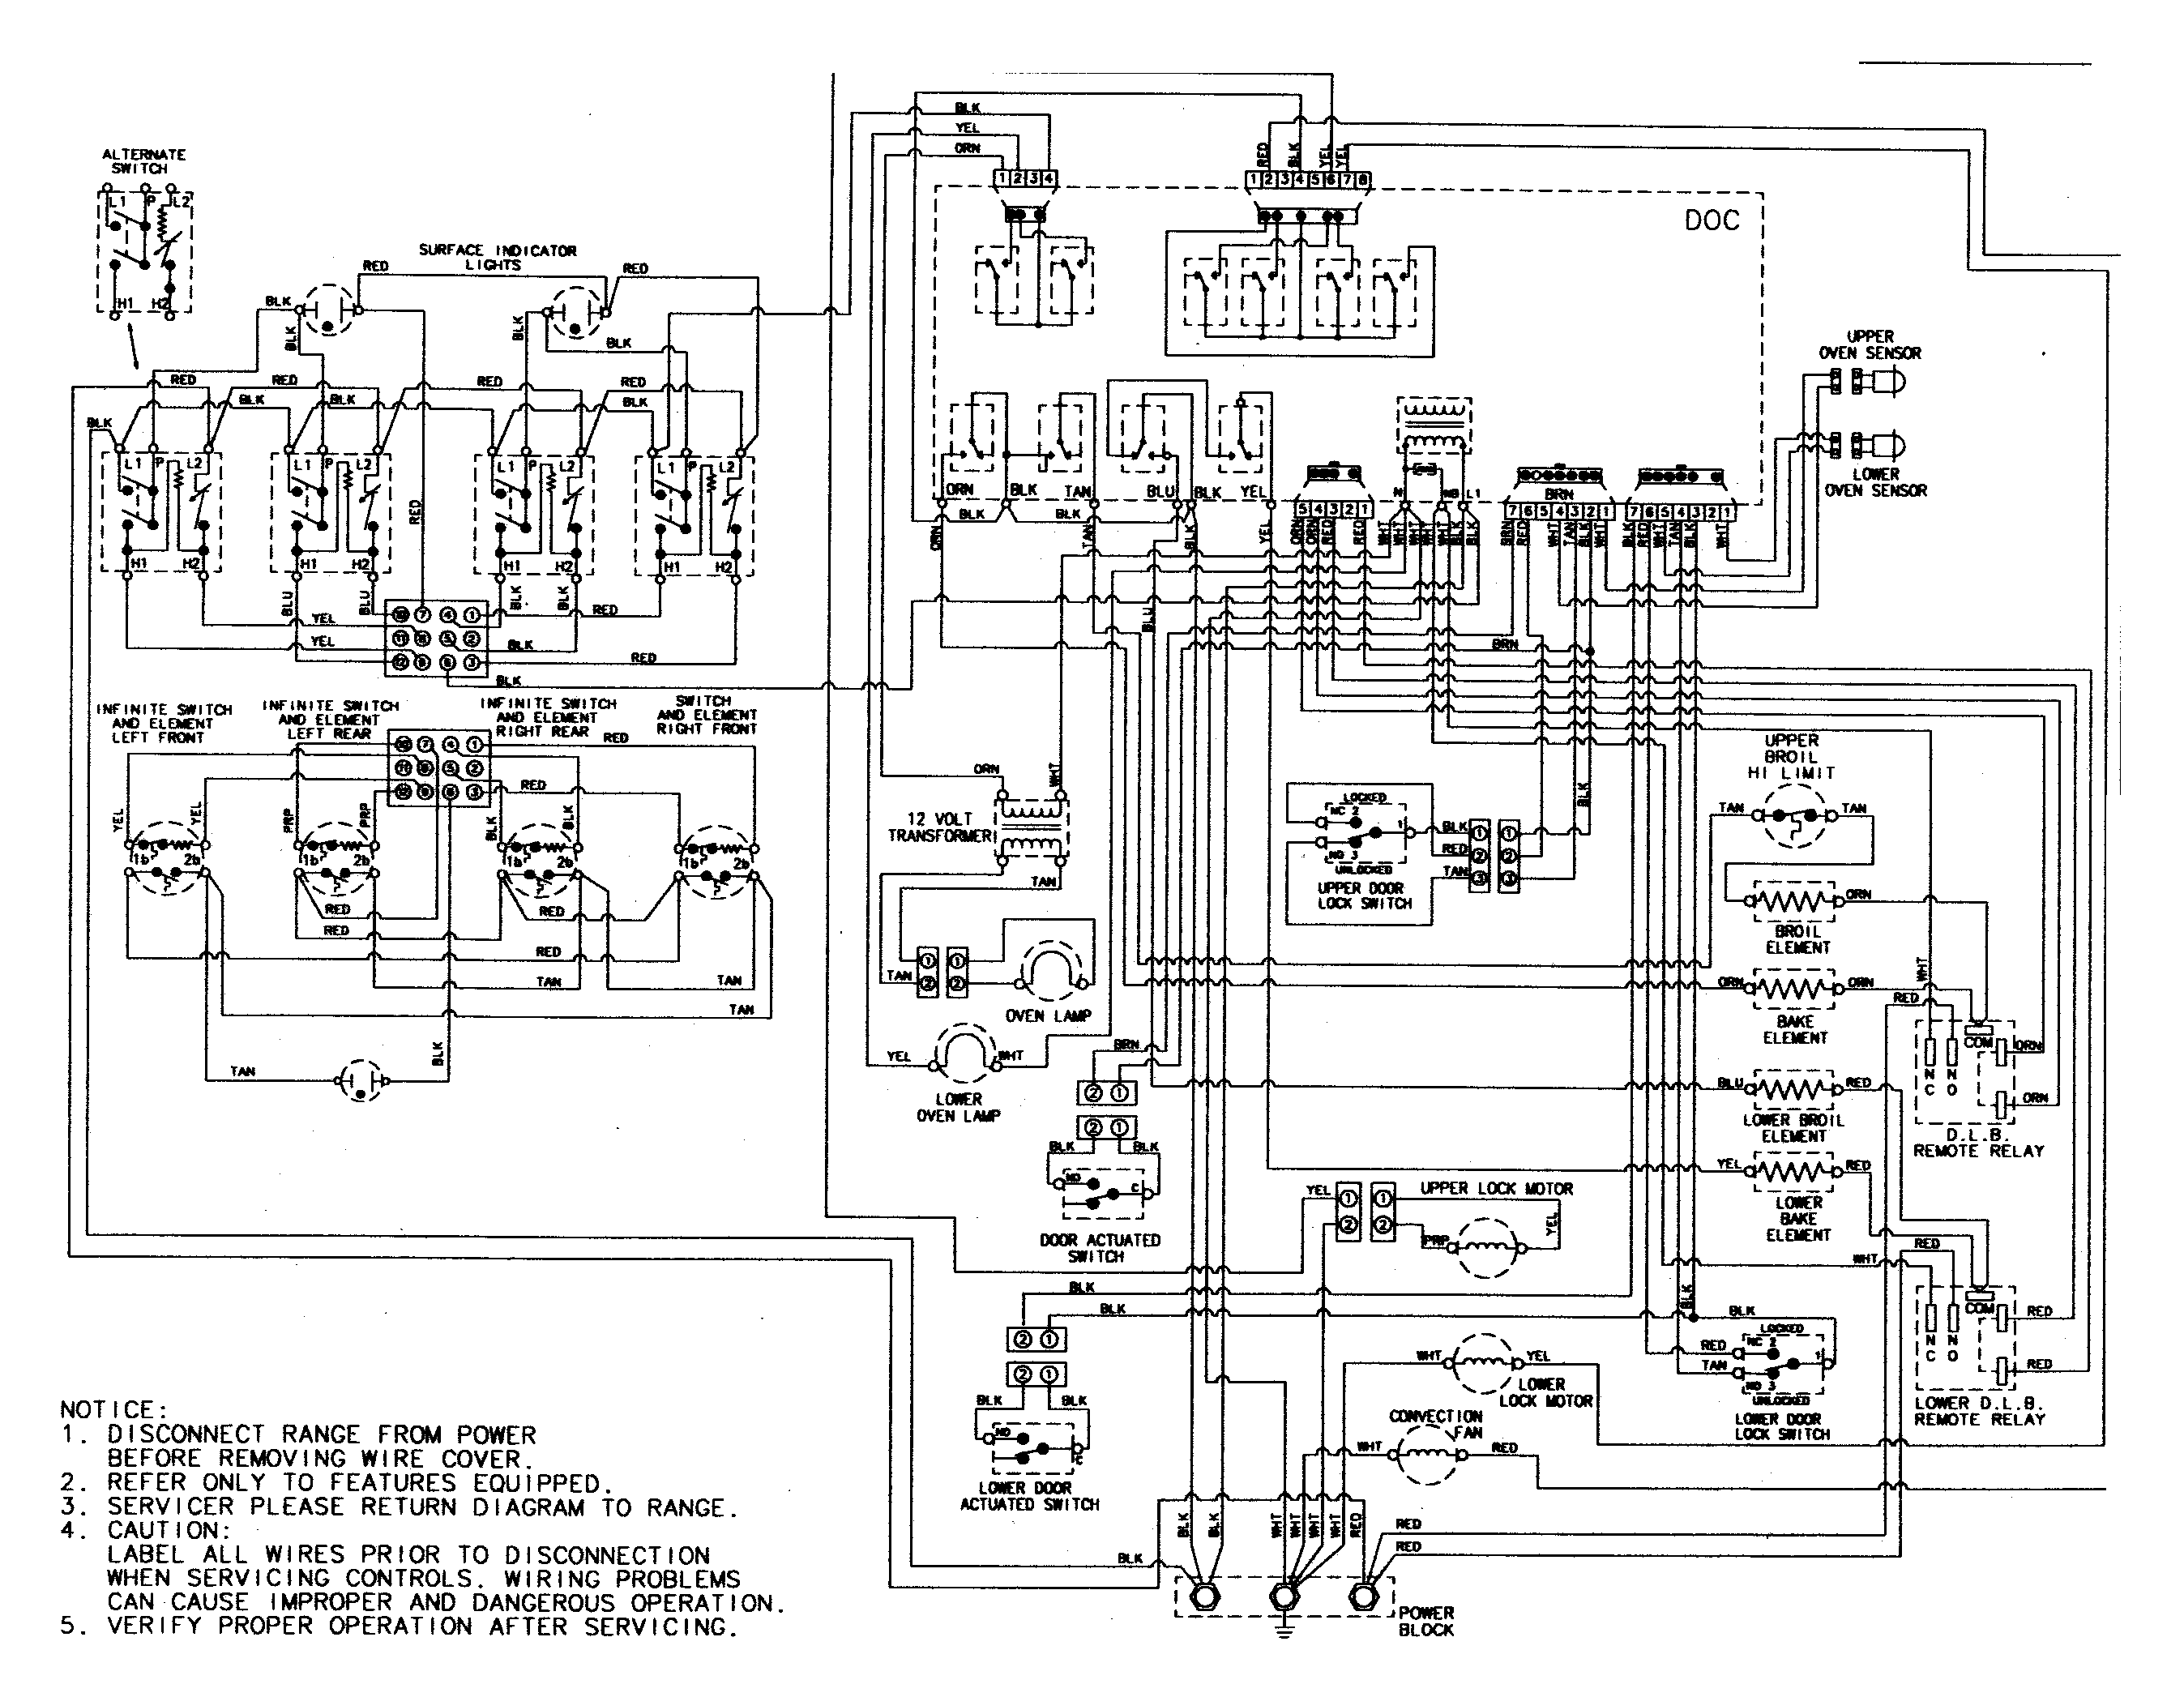 for diagram range wiring whirlpool gs445lems4 maytag mer6550baq timer - stove clocks and appliance timers diagram dryer wiring whirlpool le7010 #11